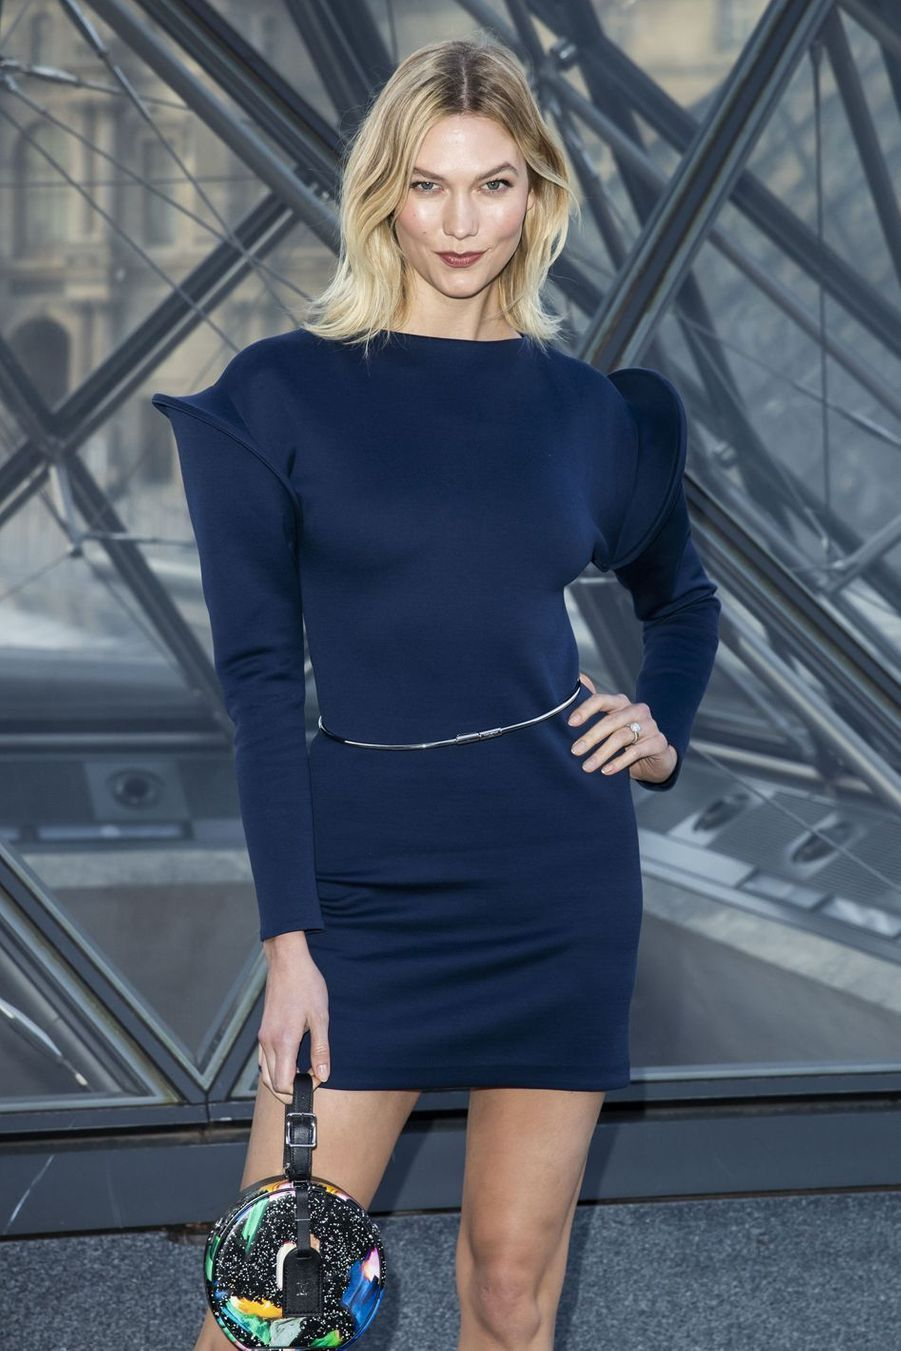 Karlie Kloss au défilé Louis Vuitton à Paris, le 5 mars 2019